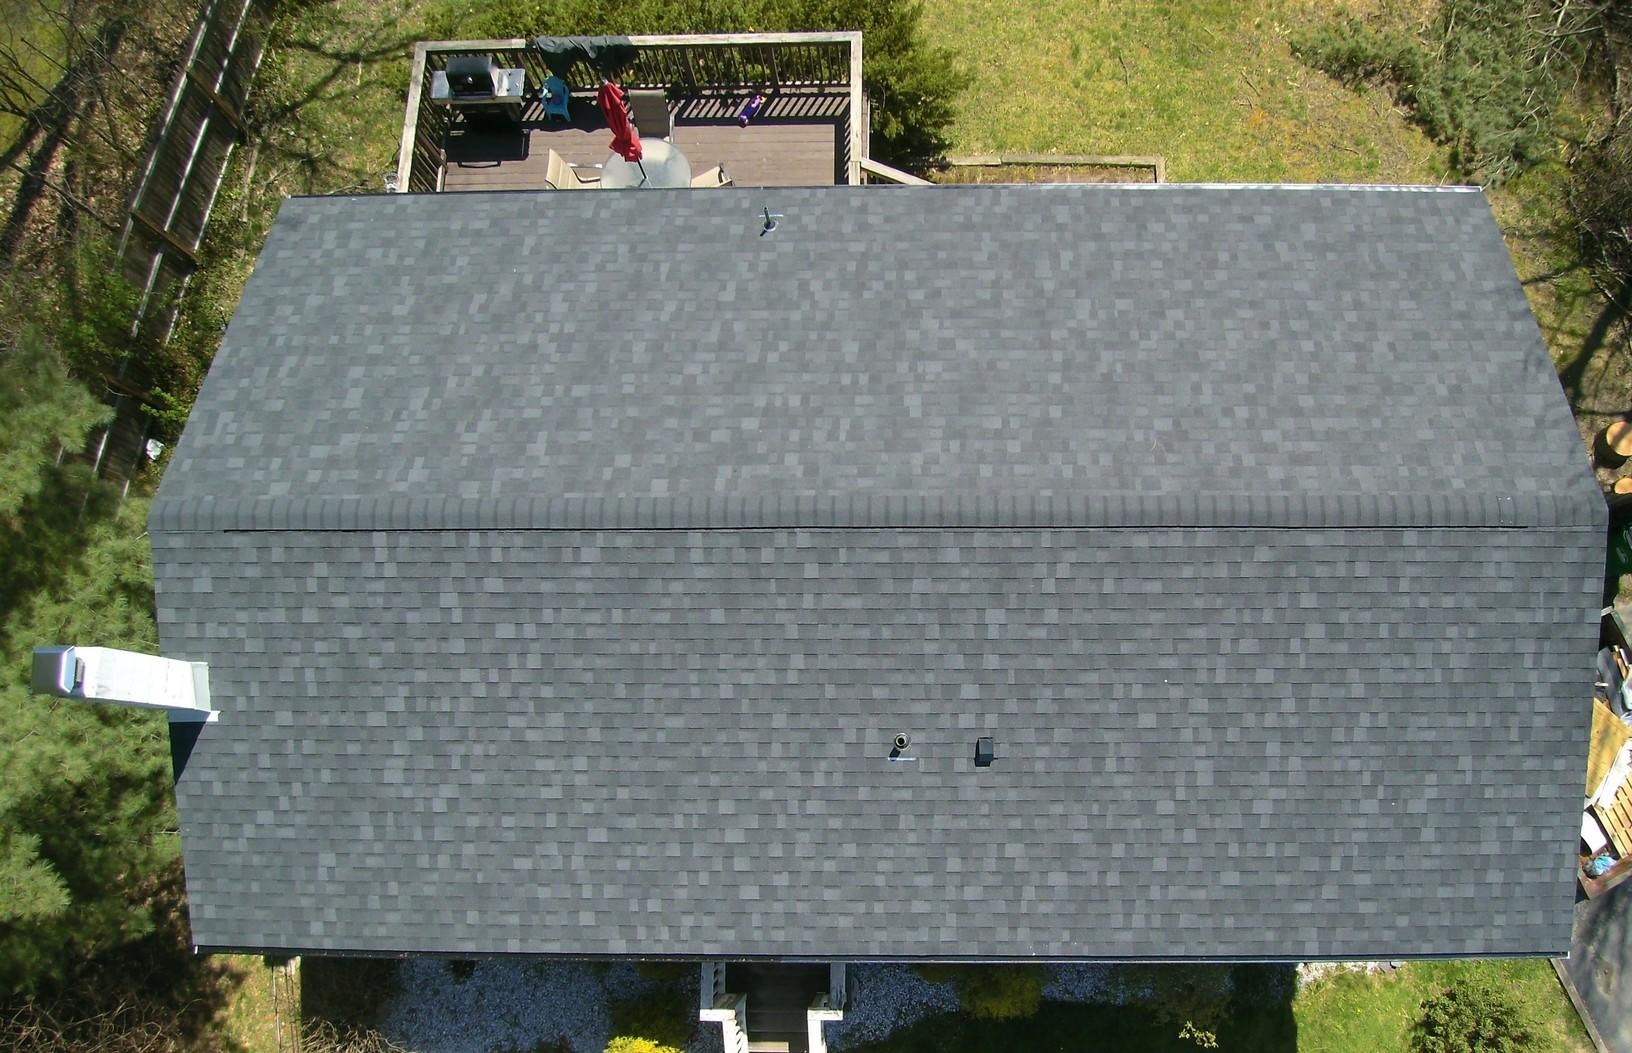 Onyx Black Roof Replacement in Wappingers Falls, NY - After Photo